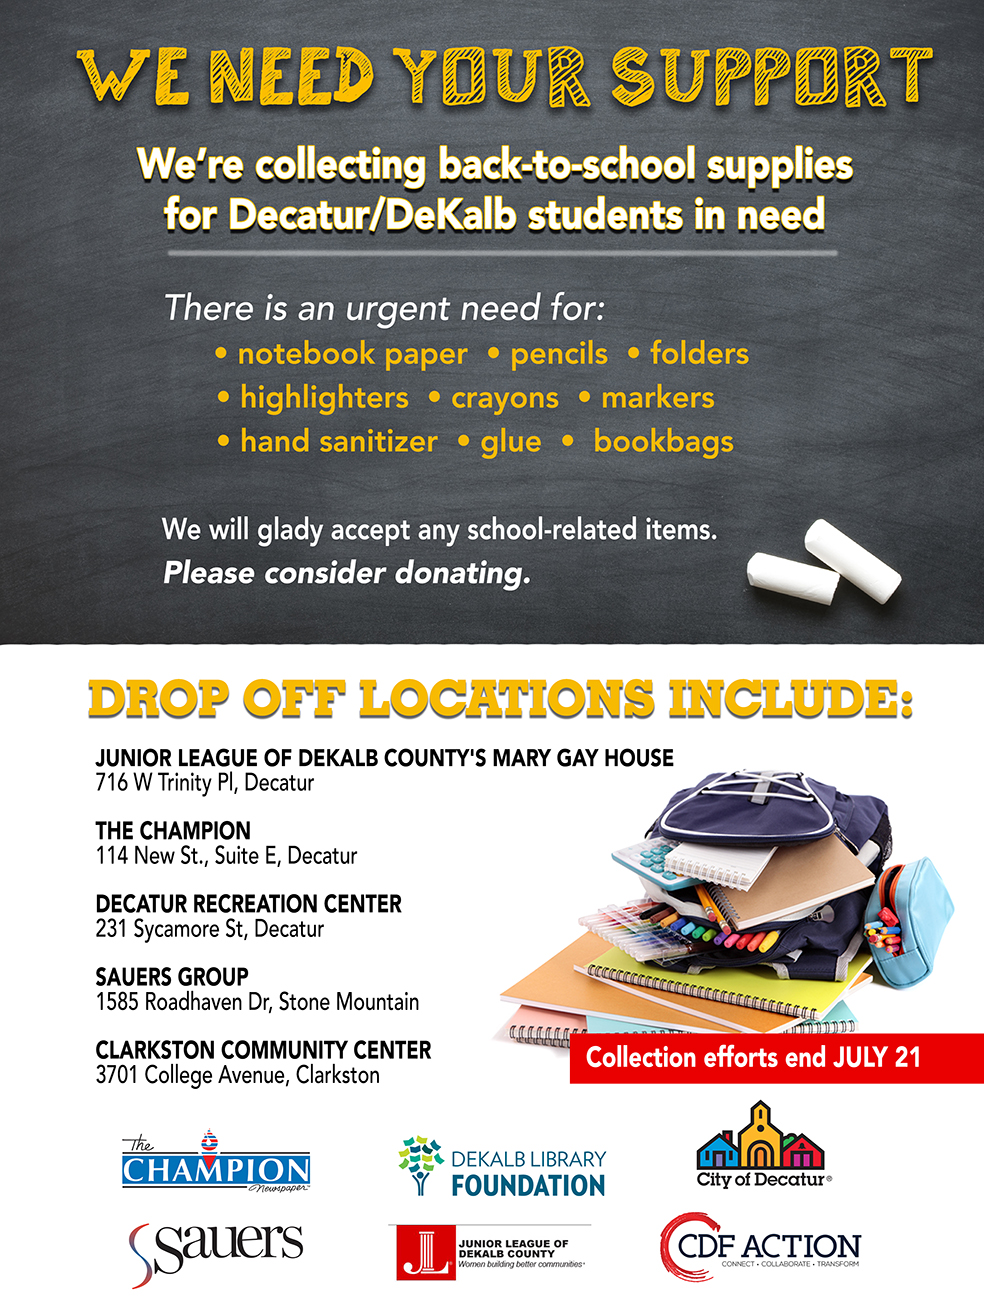 We're collecting back-to-school supplies for Decatur/DeKalb students in need